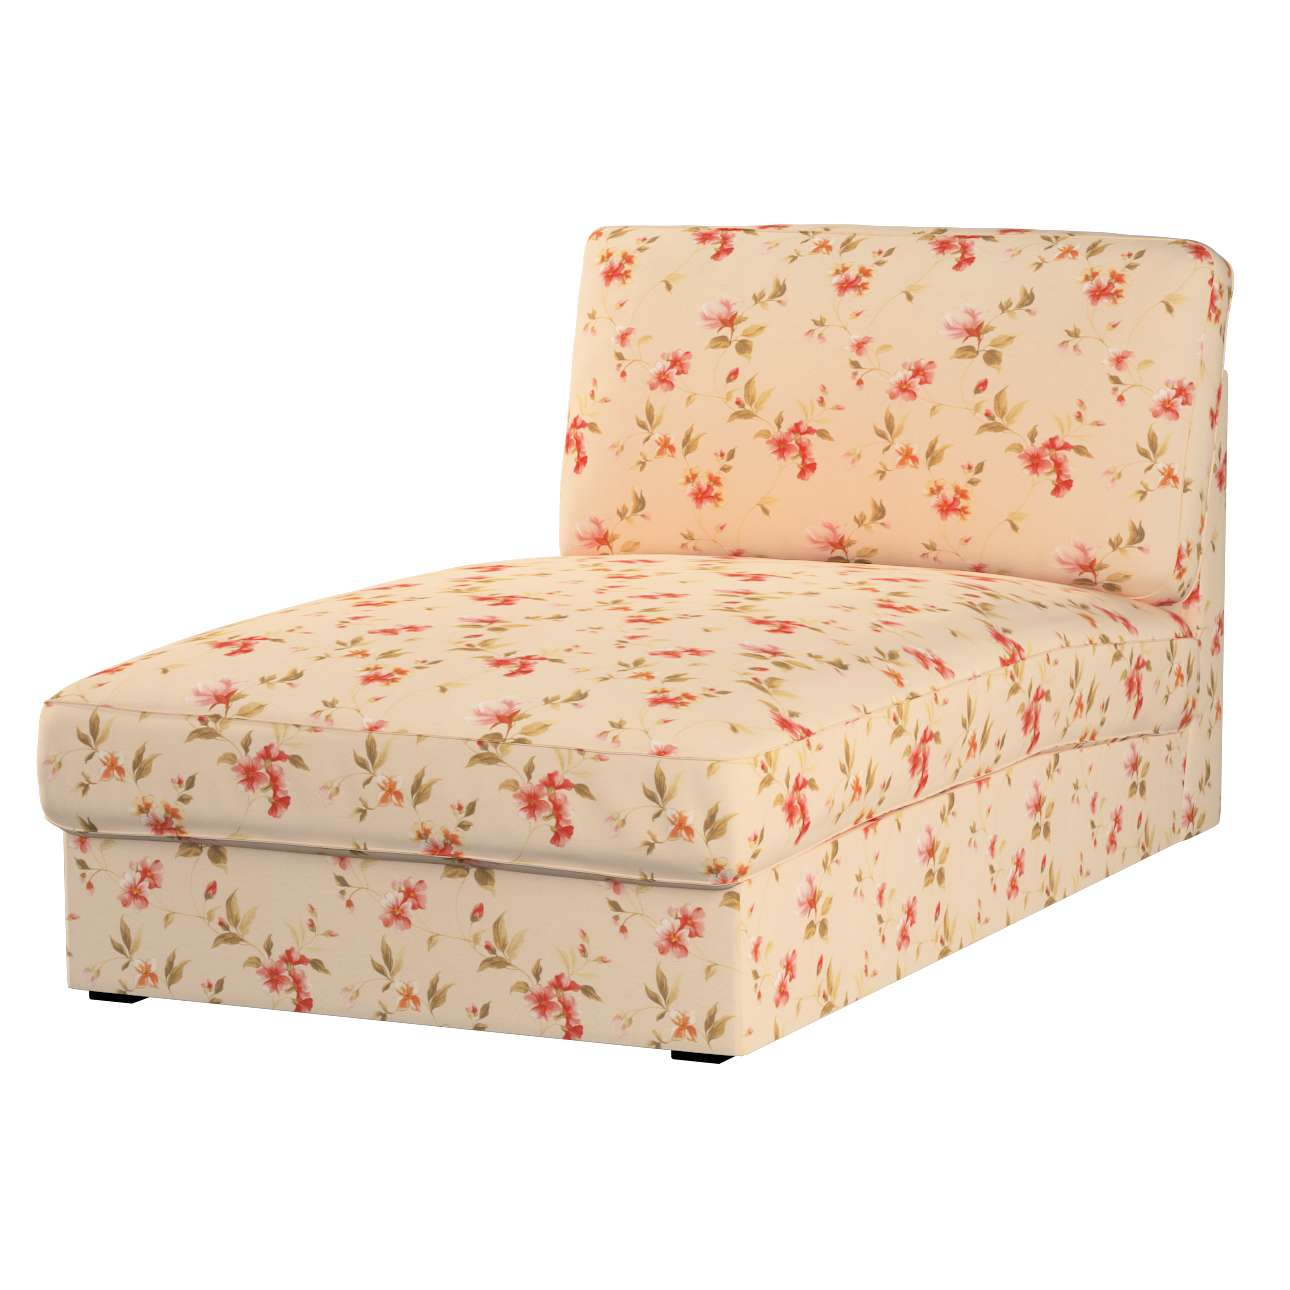 Kivik chaise longue cover Kivik chaise longue in collection Londres, fabric: 124-05